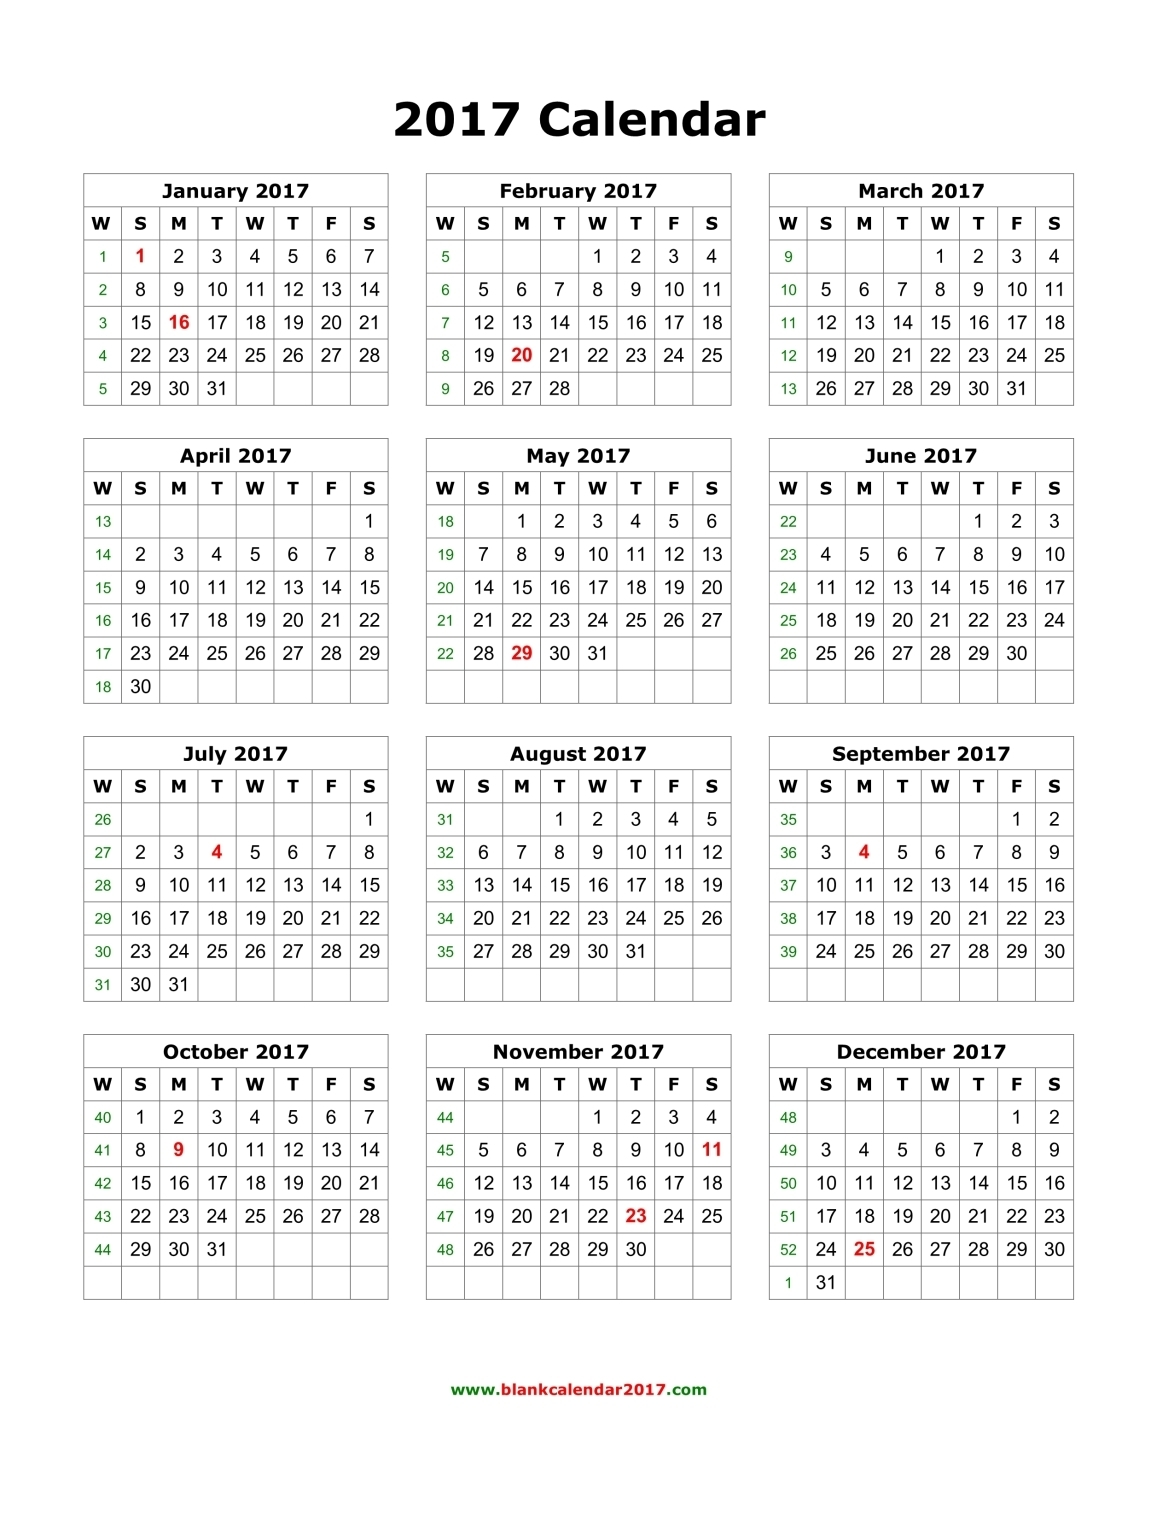 August 2017 Calendar Canad | yearly calendar printable